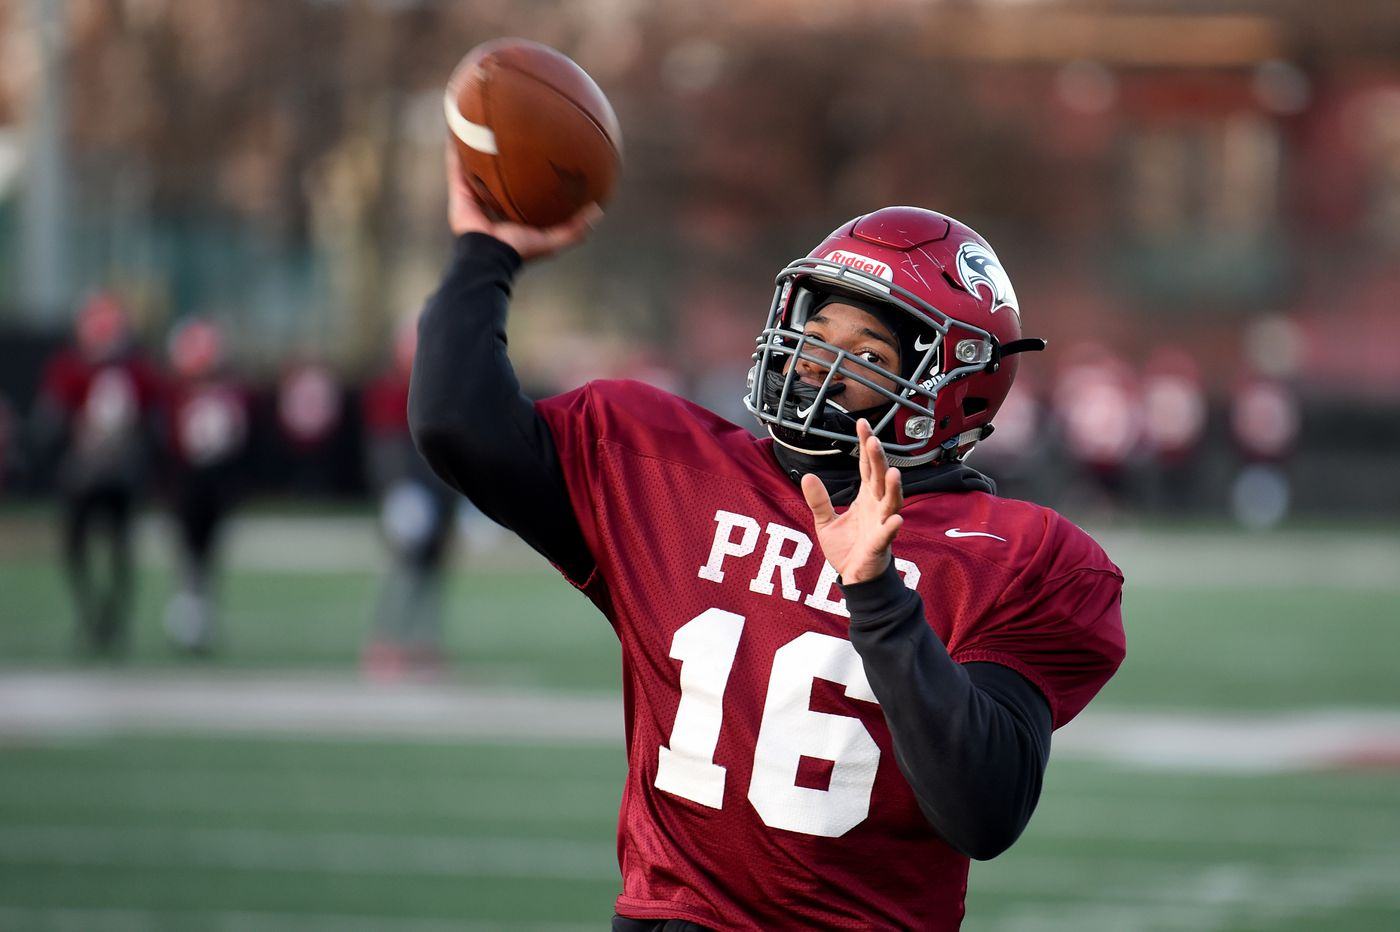 Practice makes nearly perfect for St. Joseph's Prep's Malik Cooper